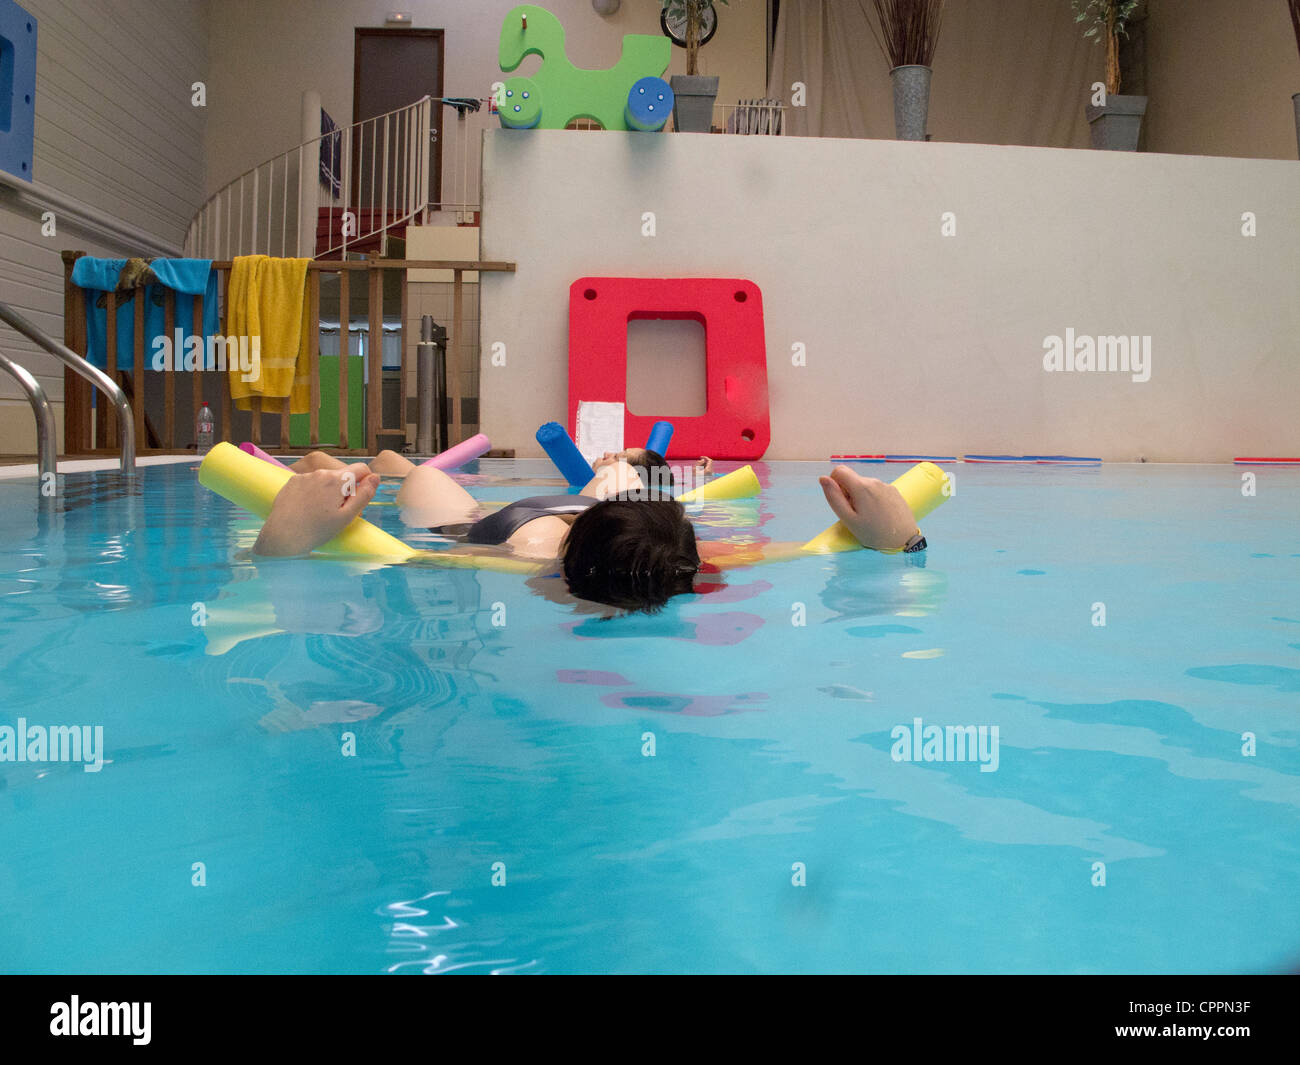 PREGNANT WO. EXERCISING IN WATER Stock Photo